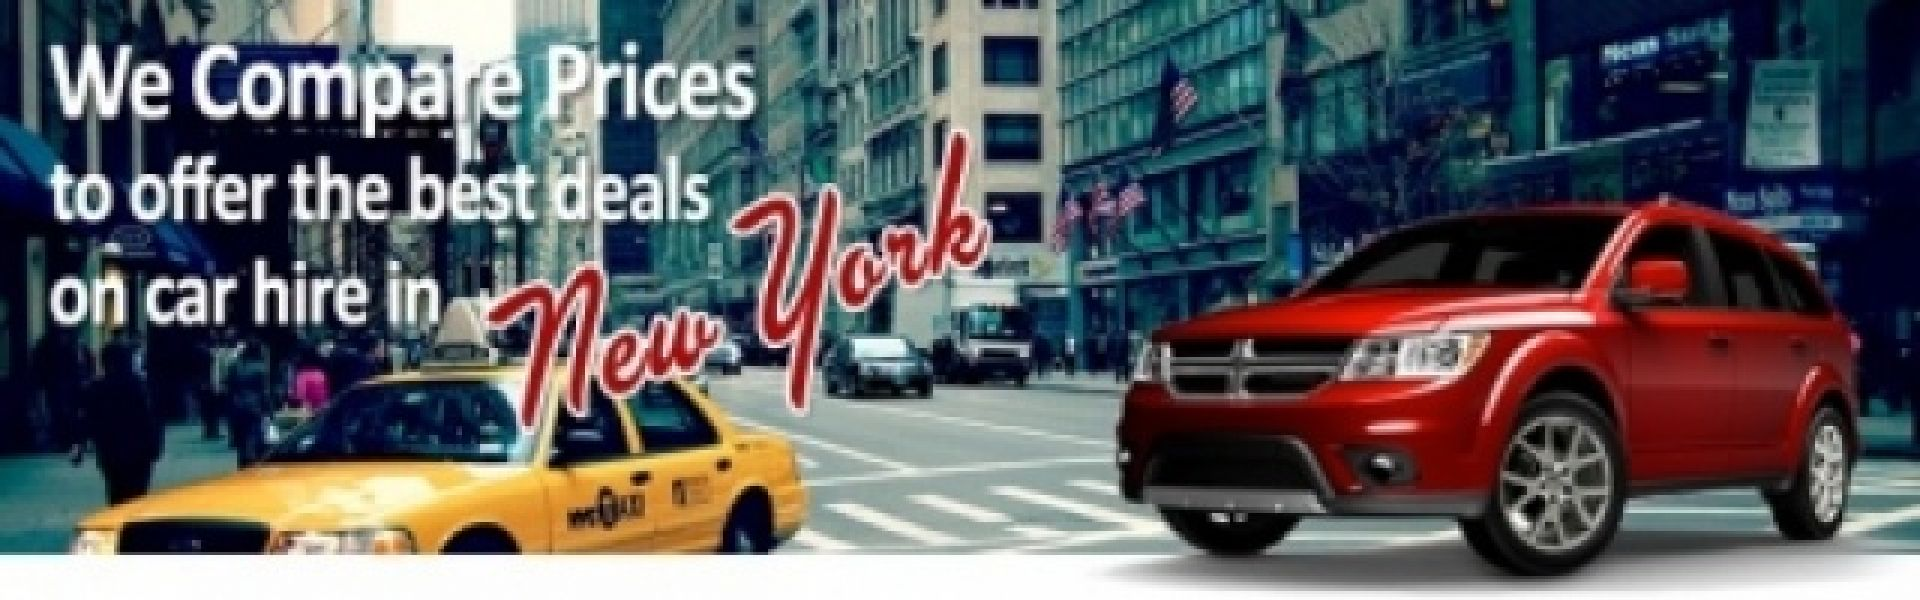 Best Car Offers NYC